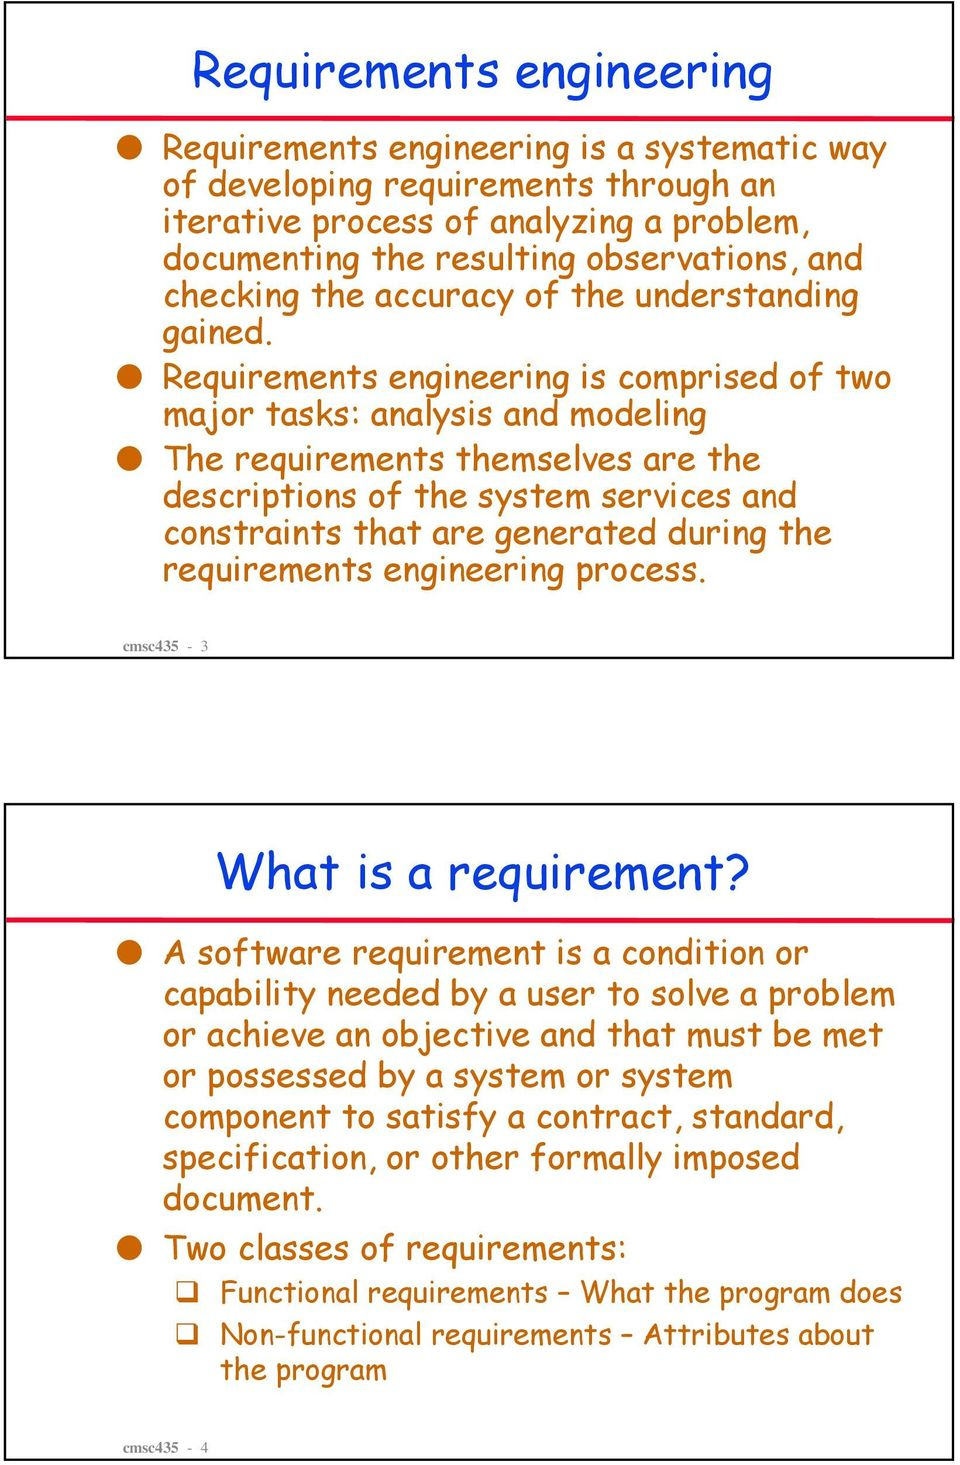 Requirements engineering is comprised of two major tasks: analysis and modeling The requirements themselves are the descriptions of the system services and constraints that are generated during the